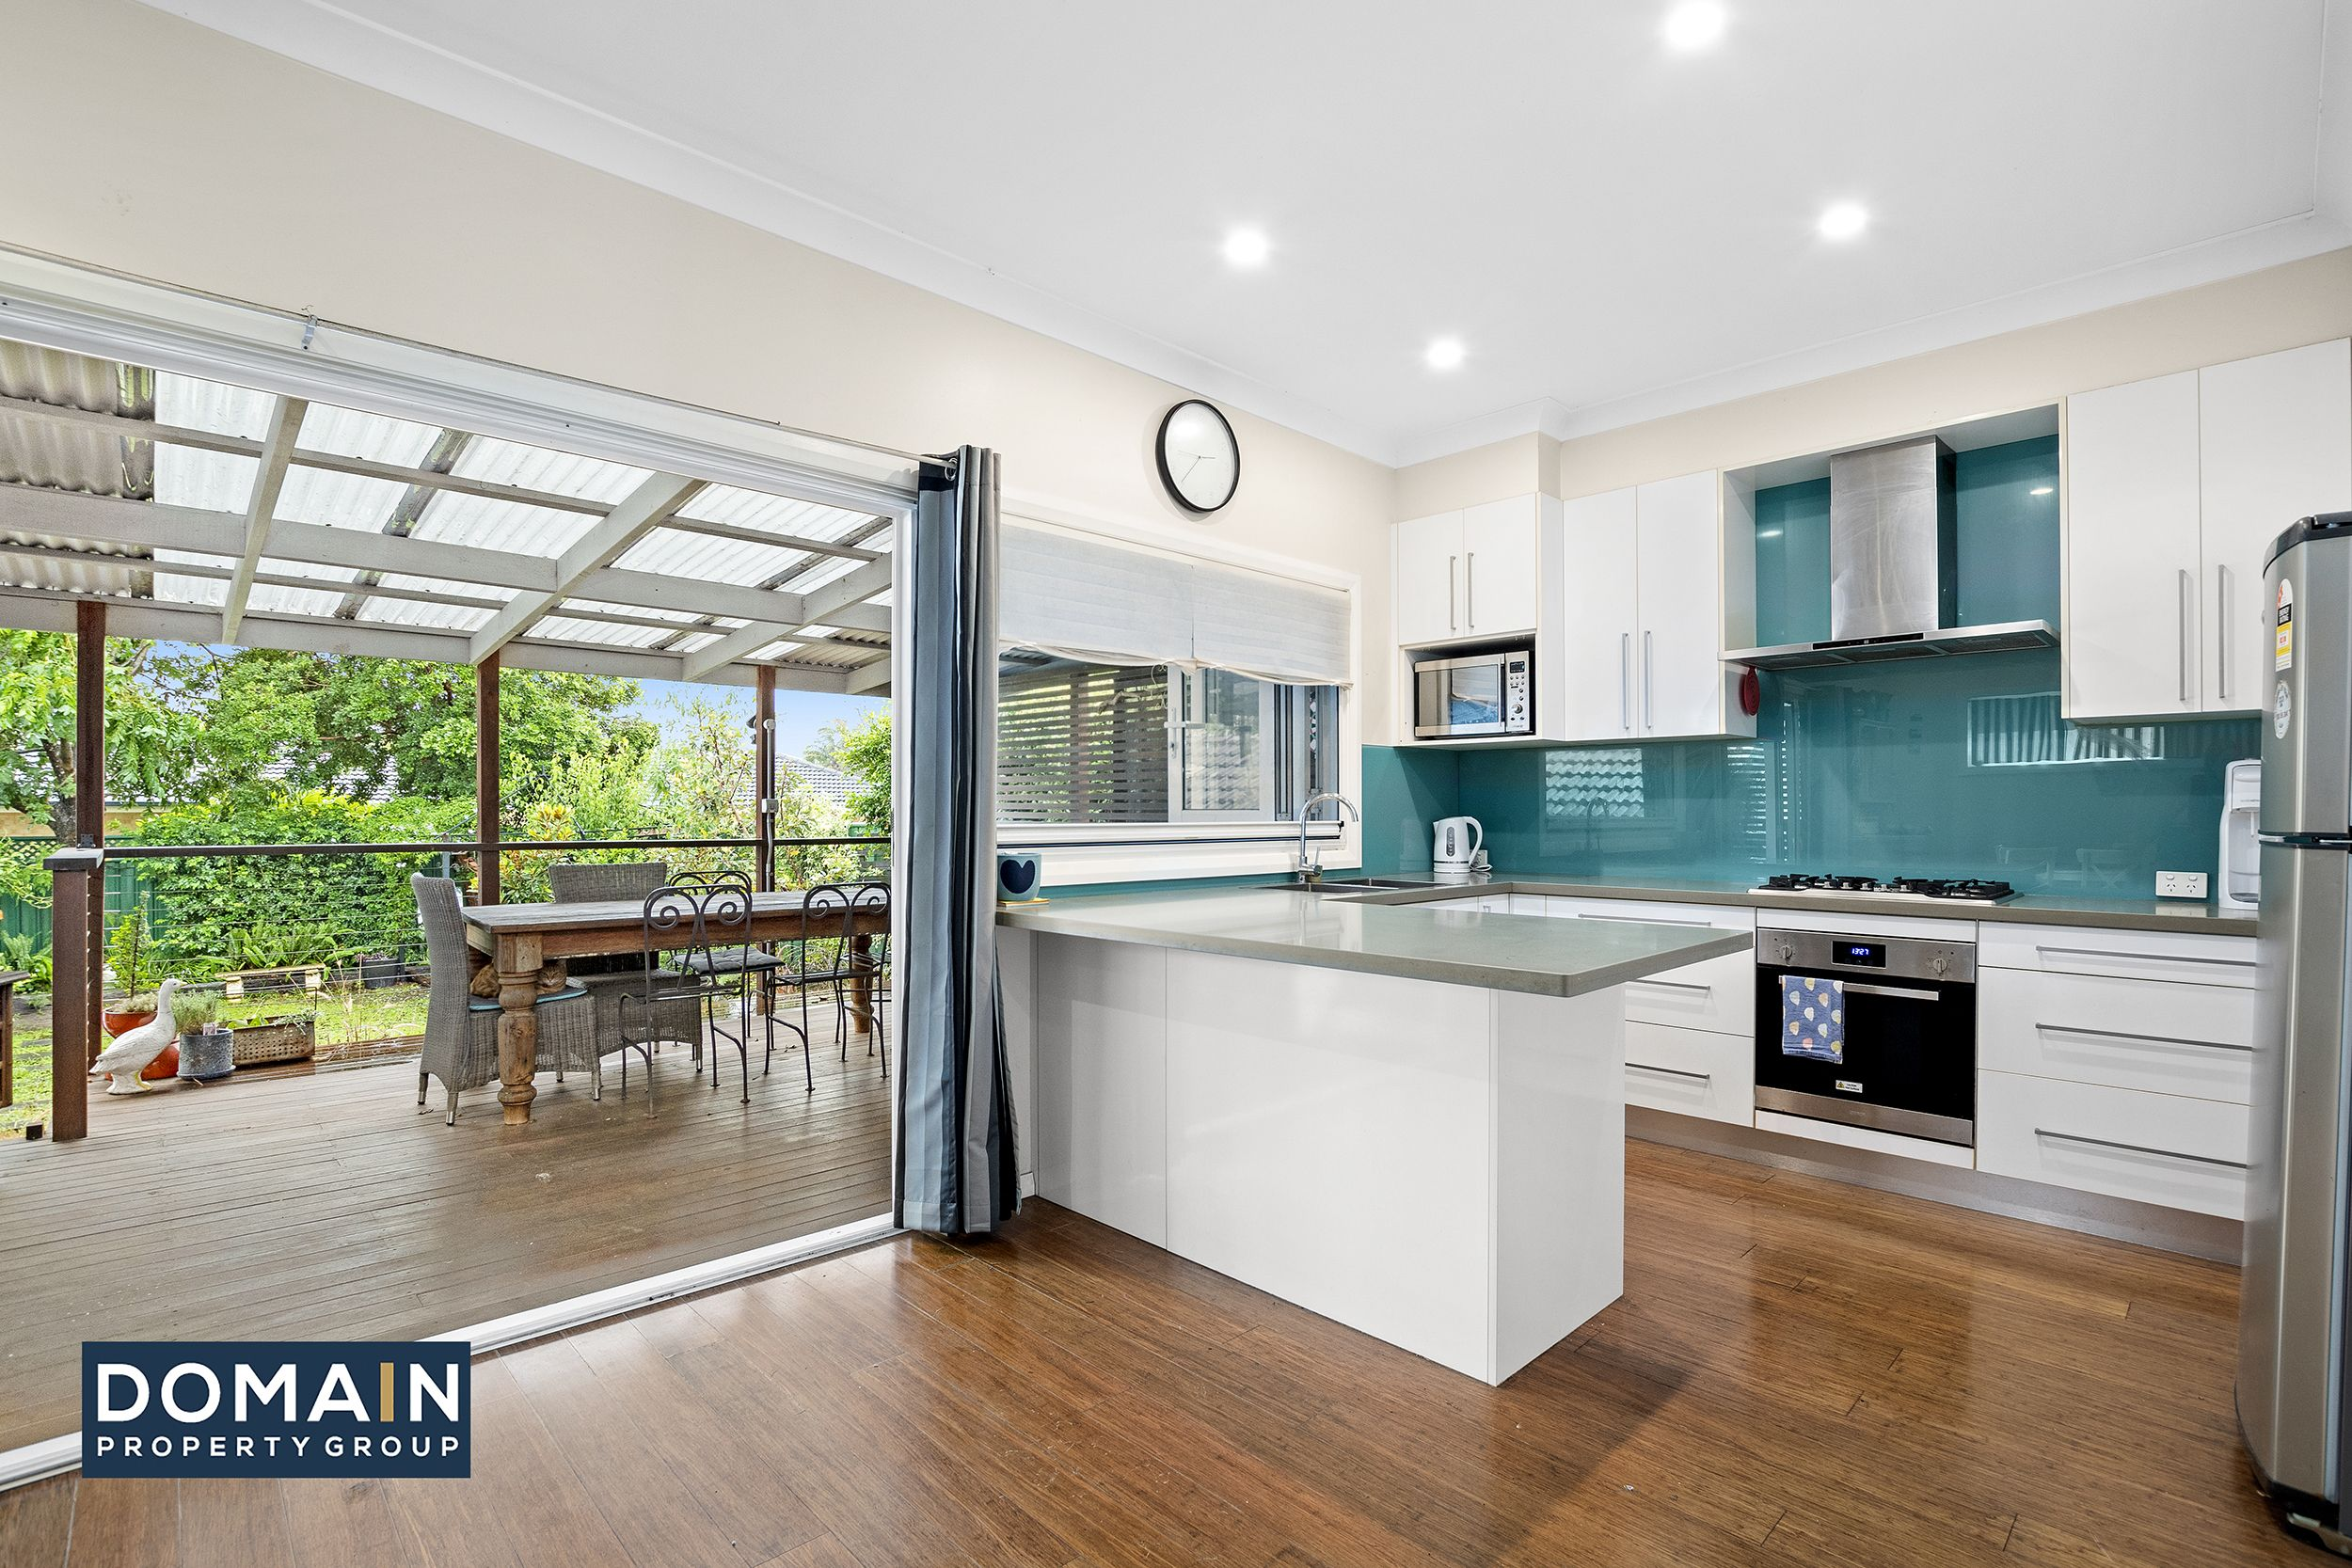 59 Cambridge Street Umina Beach 2257